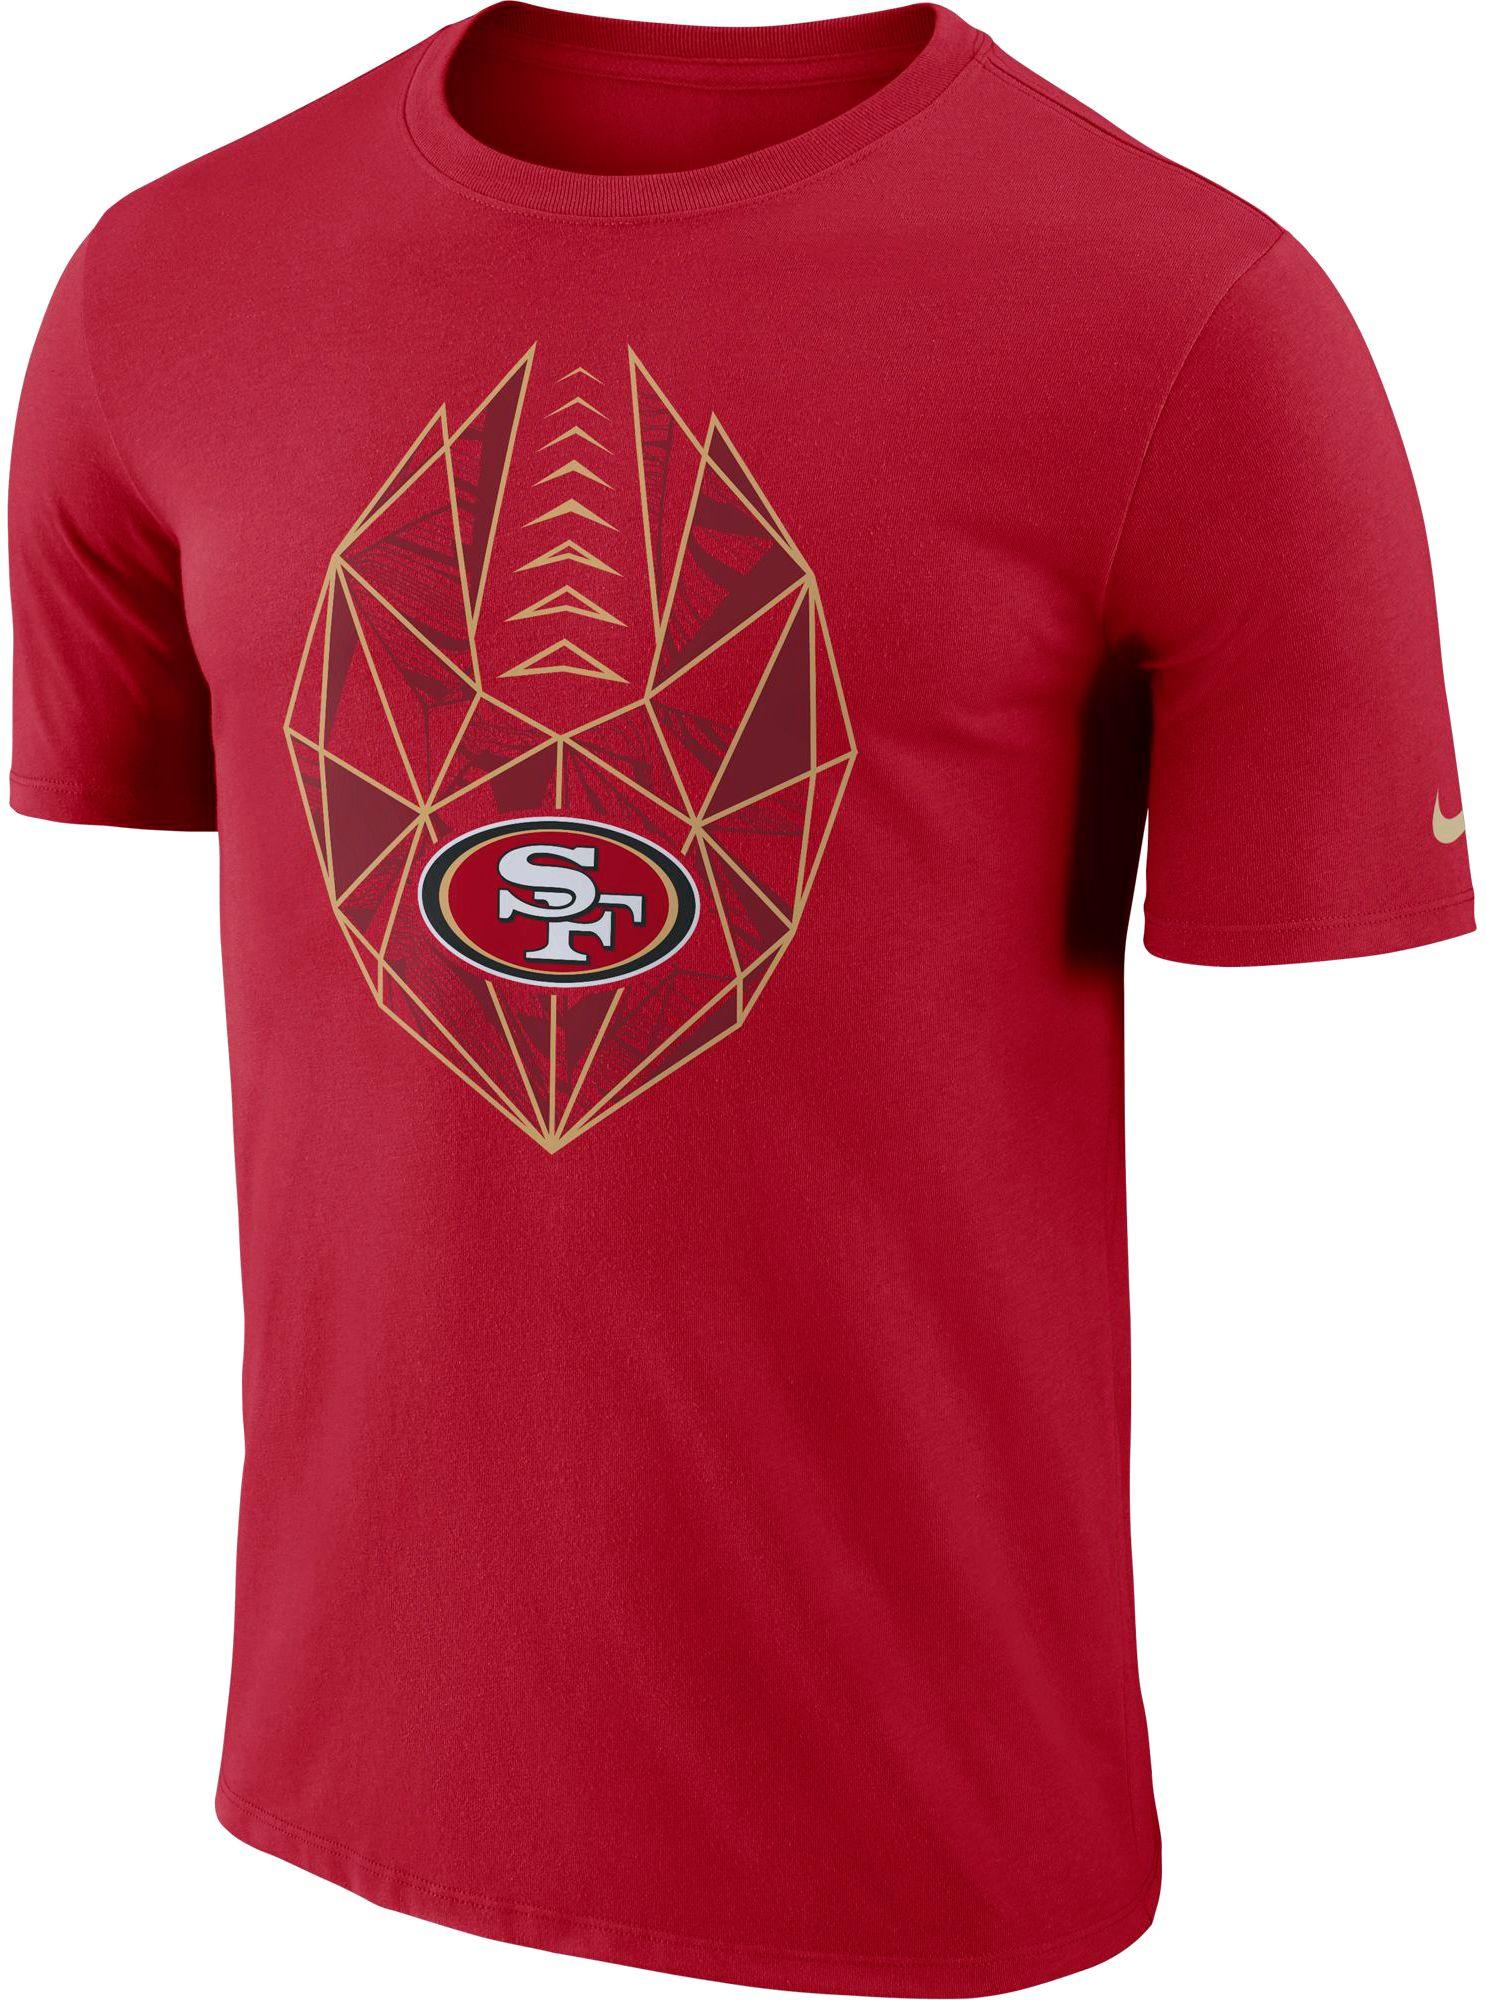 Wholesale Nike Men's San Francisco Diffraction Icon Performance Red T Shirt